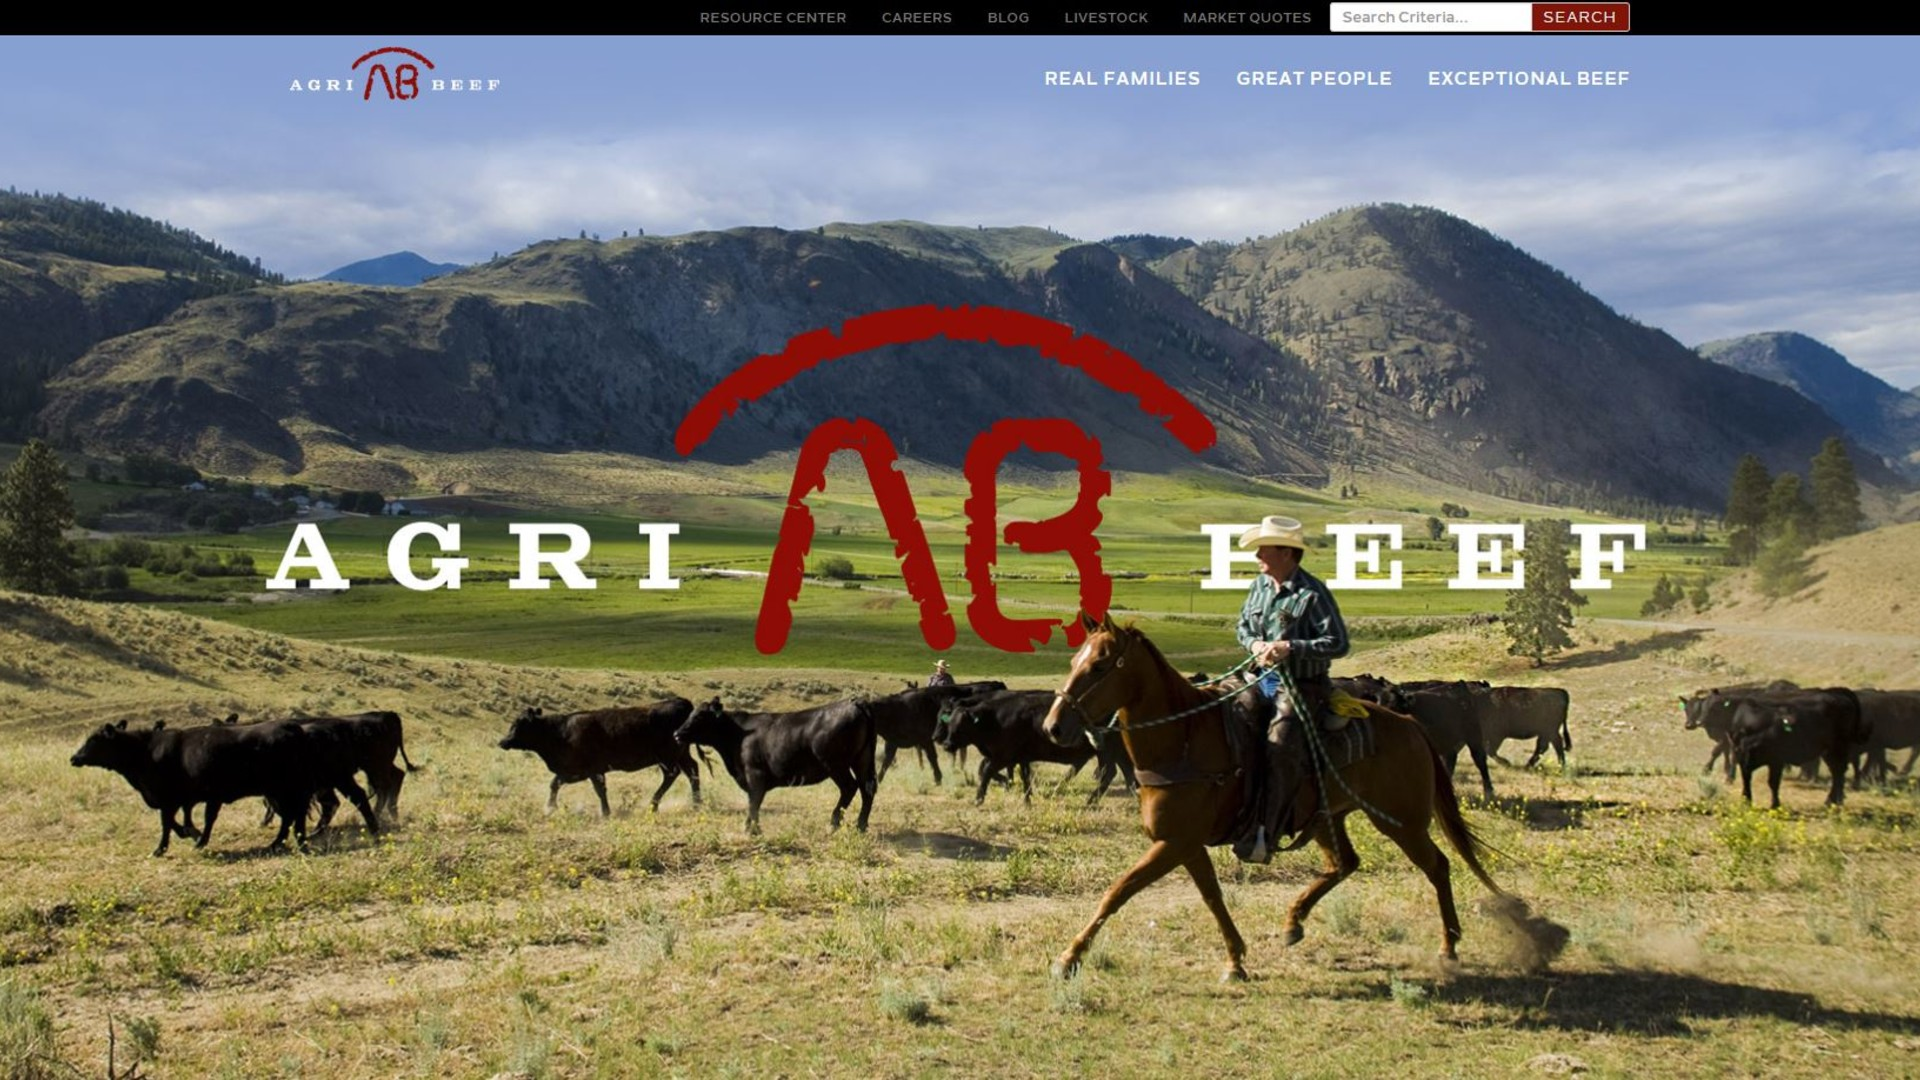 Agri Beef Remains a Leader in Beef E-Commerce